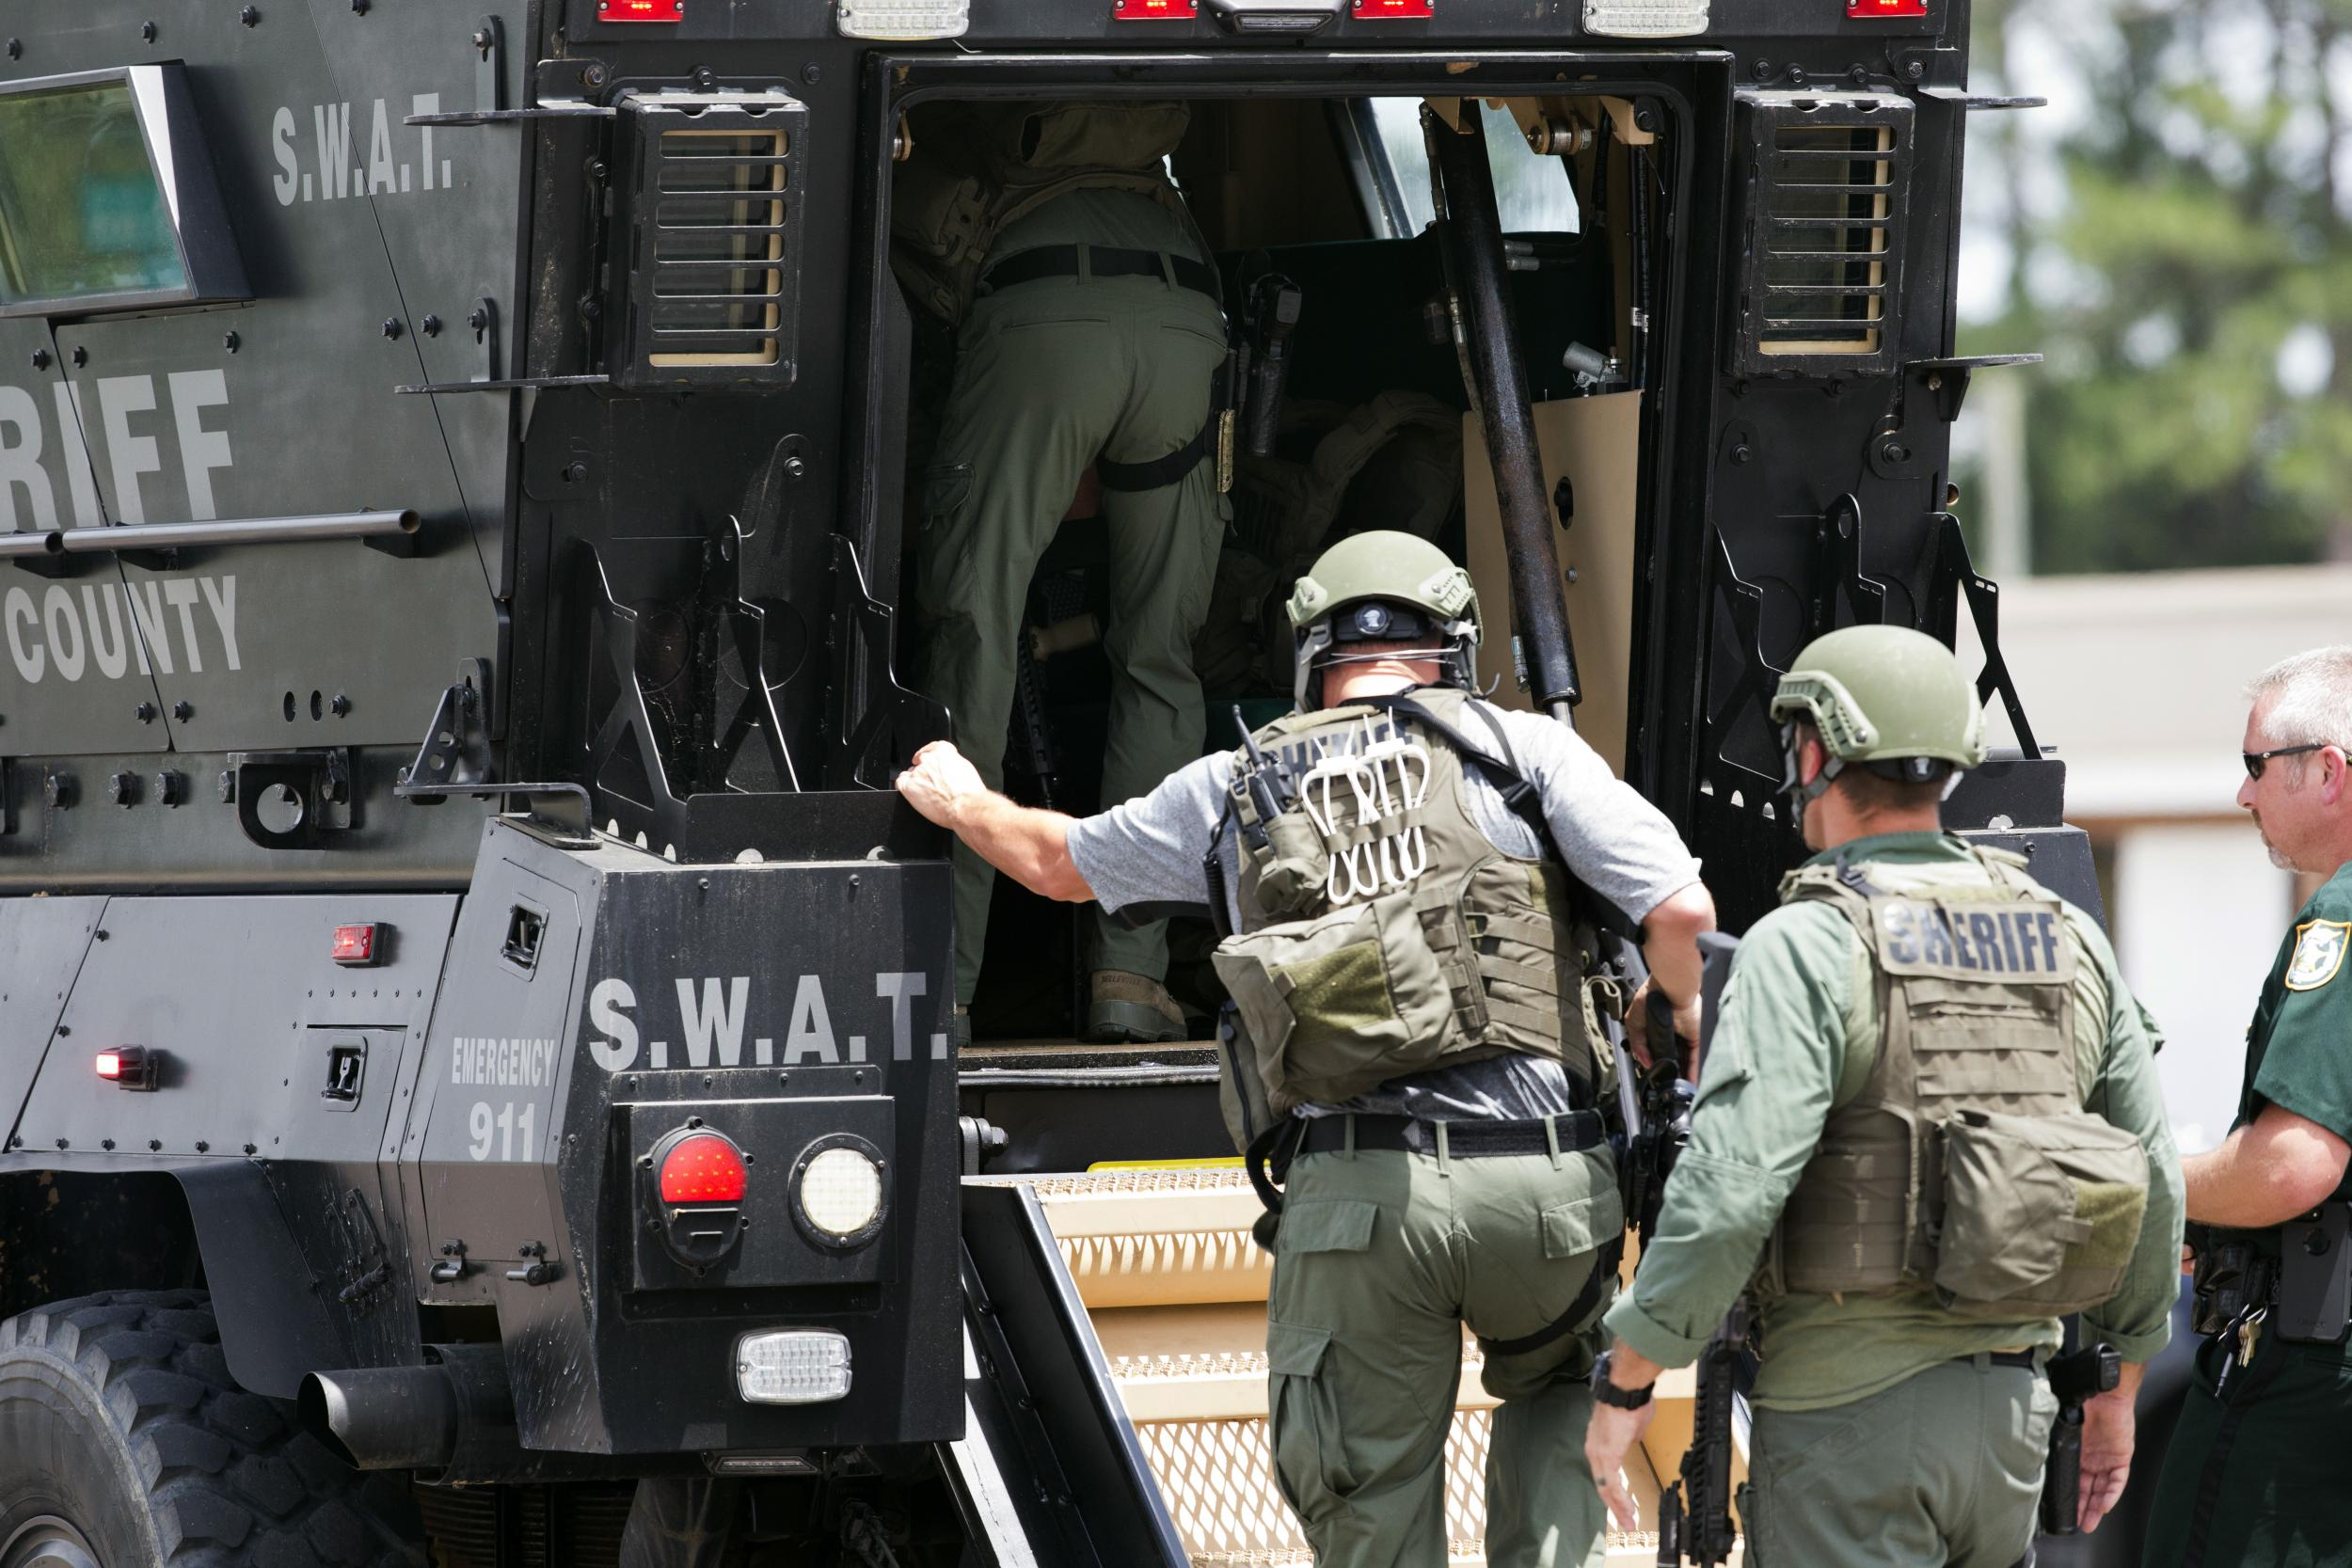 Panama City shooting: Suspect killed after hours-long standoff with police